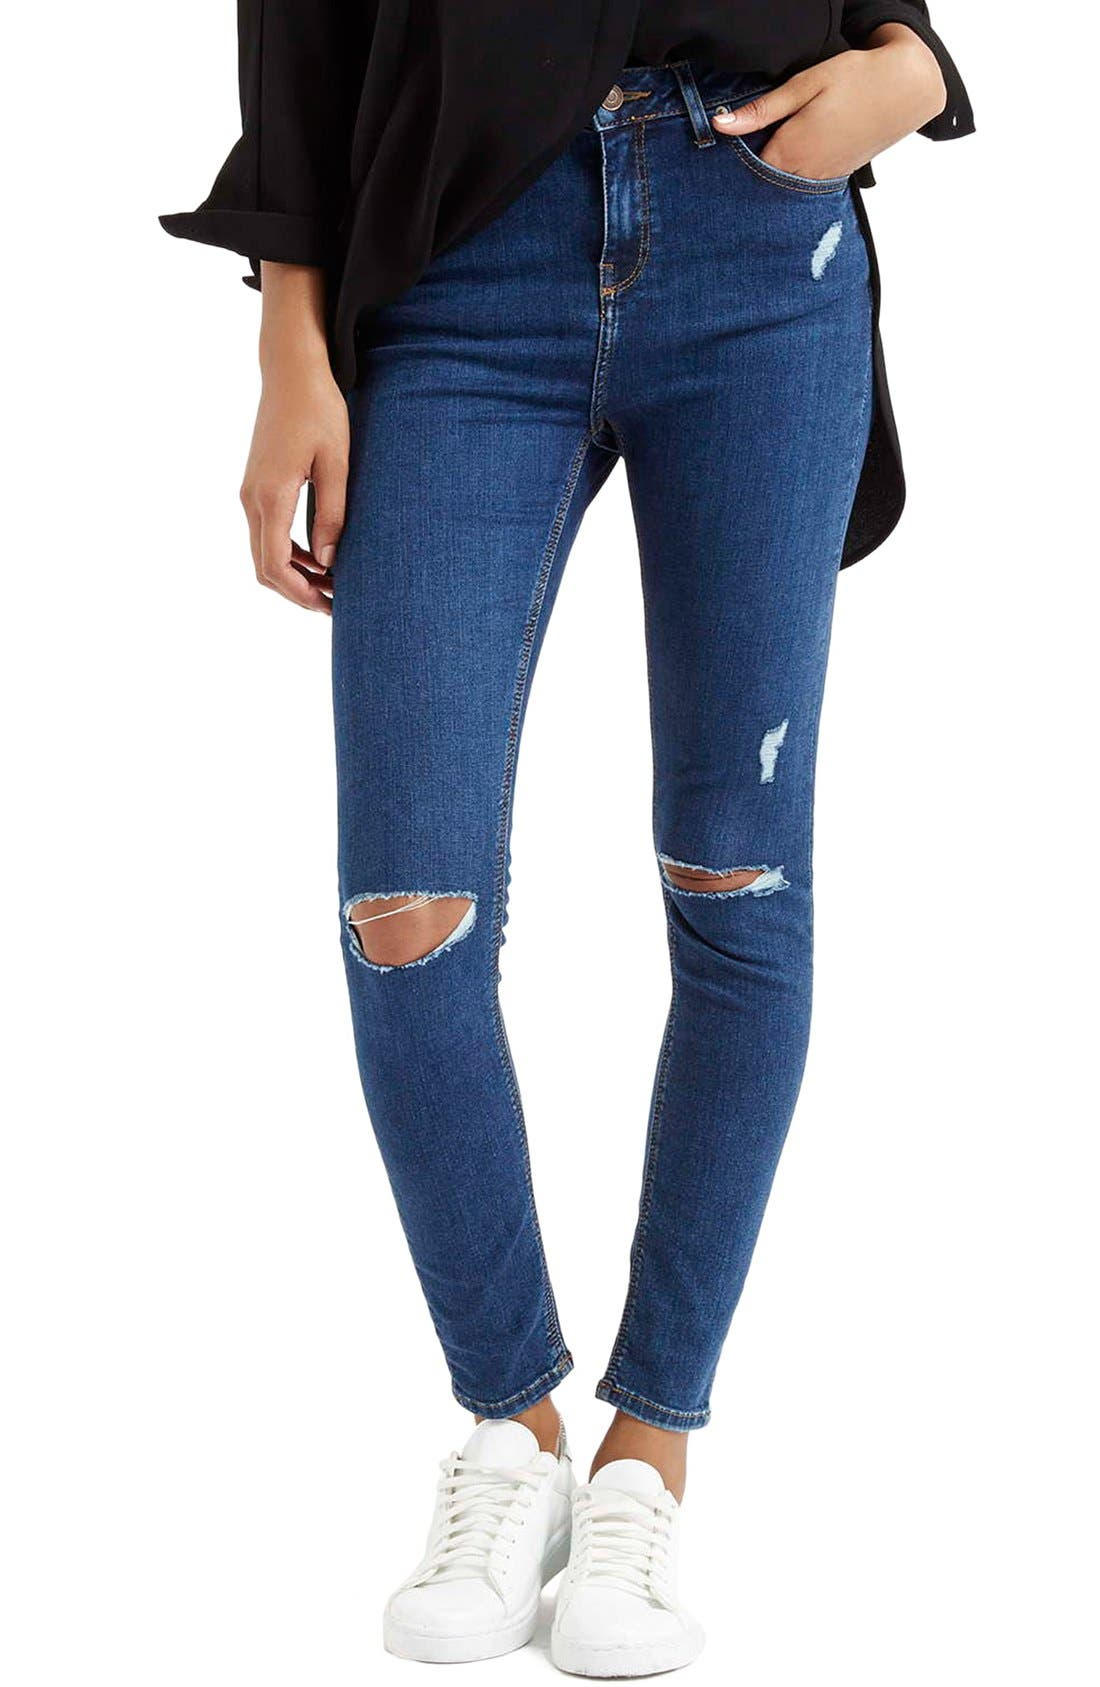 Main Image - Topshop Moto 'Jamie' High Rise Ripped Jeans